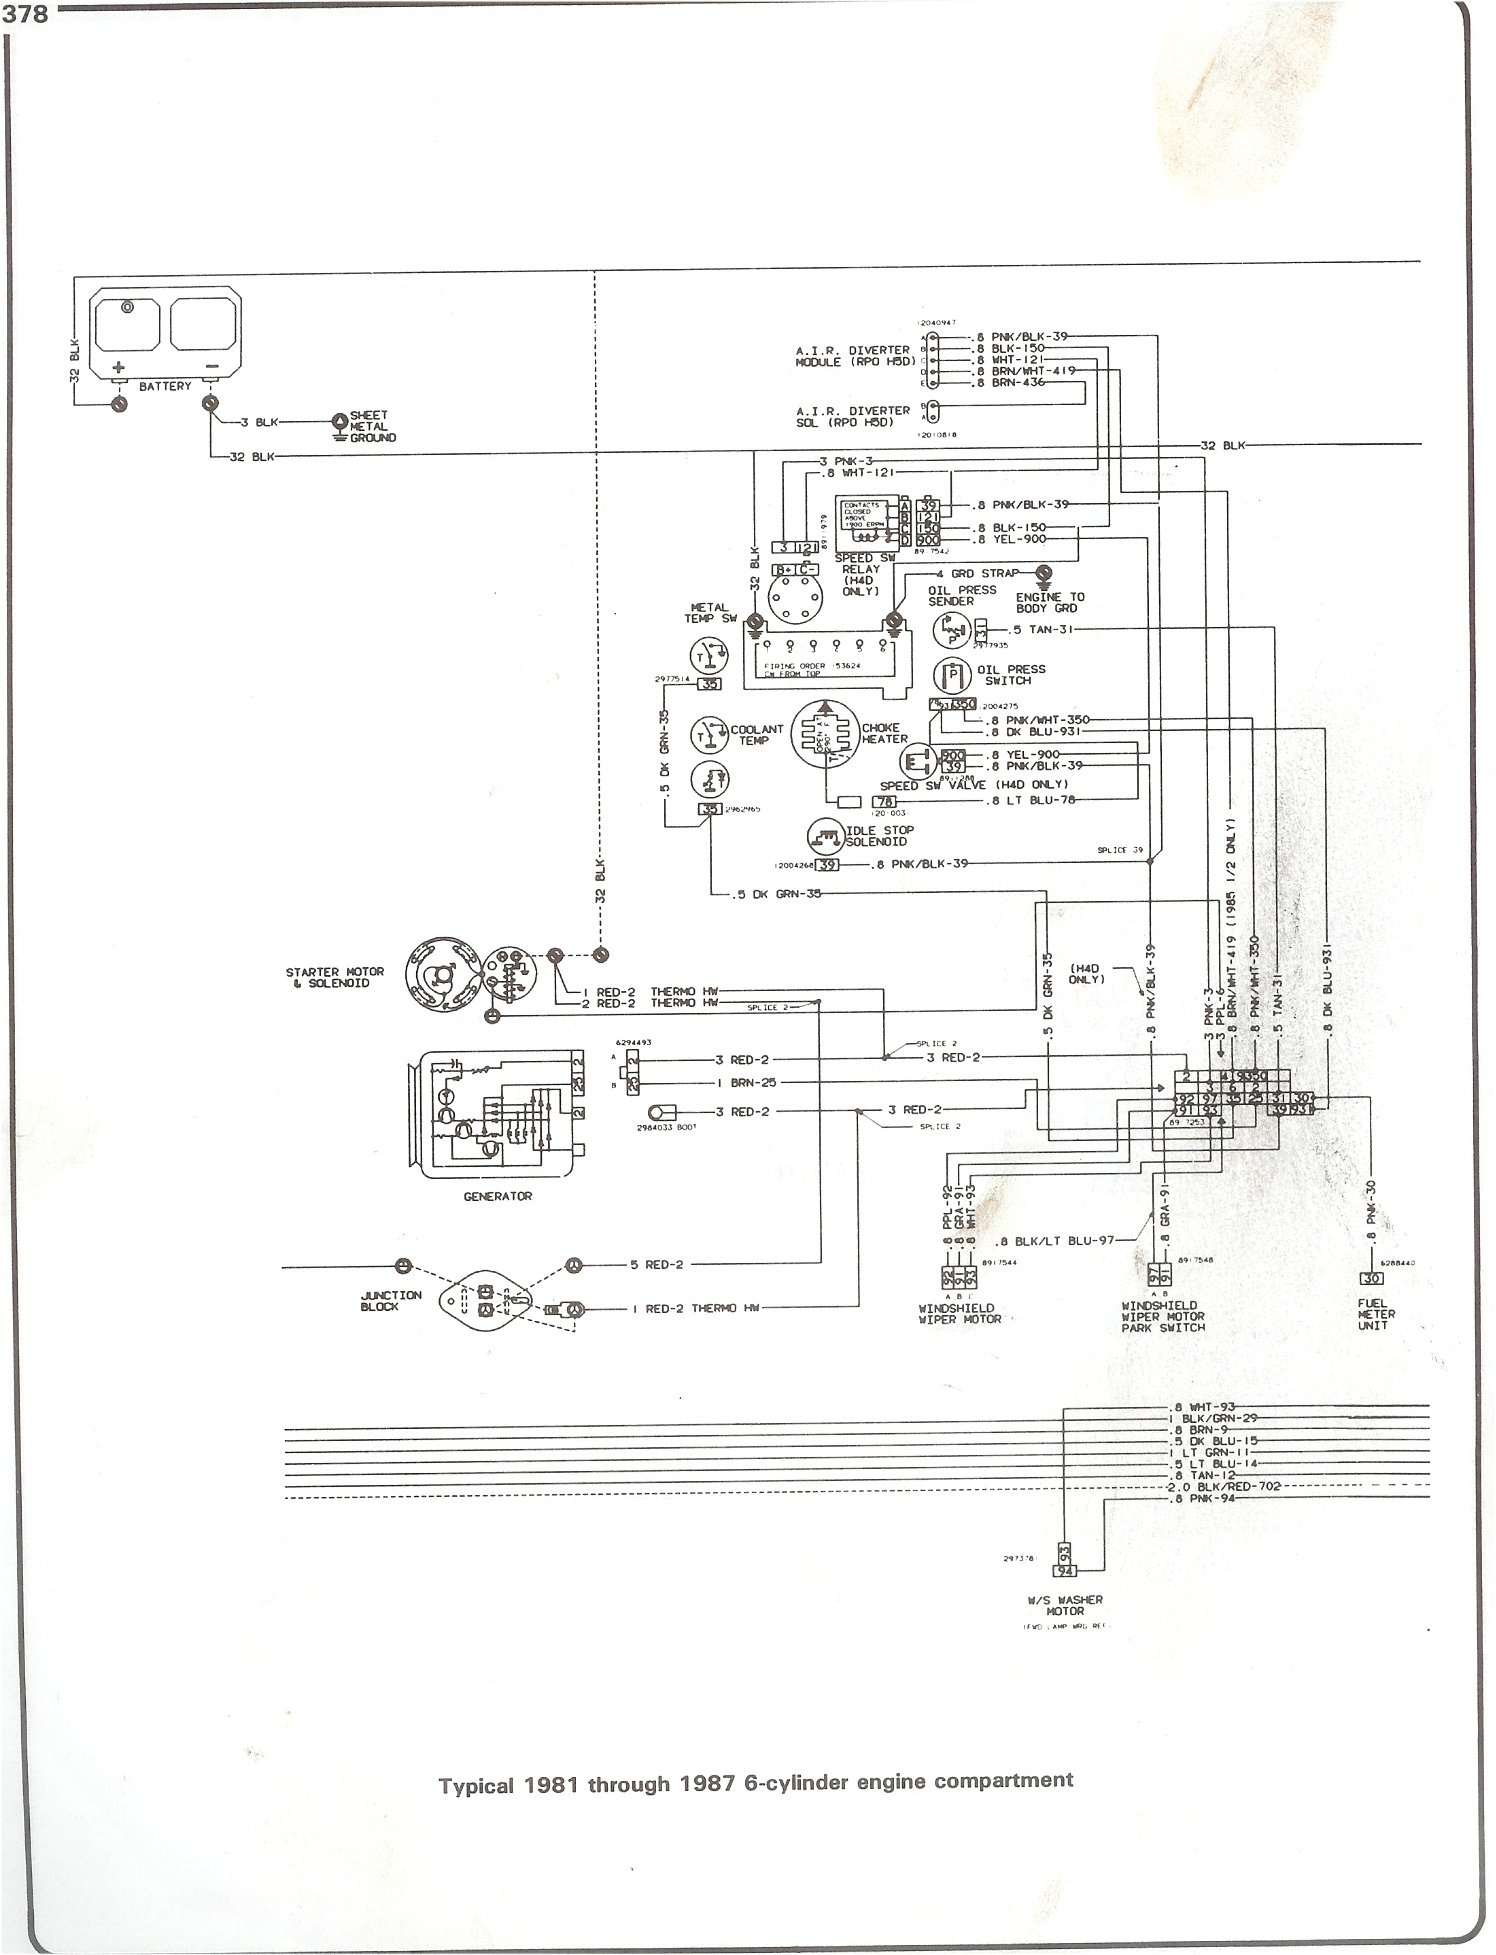 Complete 73 87 Wiring Diagrams Electrical Diagram 81 I6 Engine Compartment